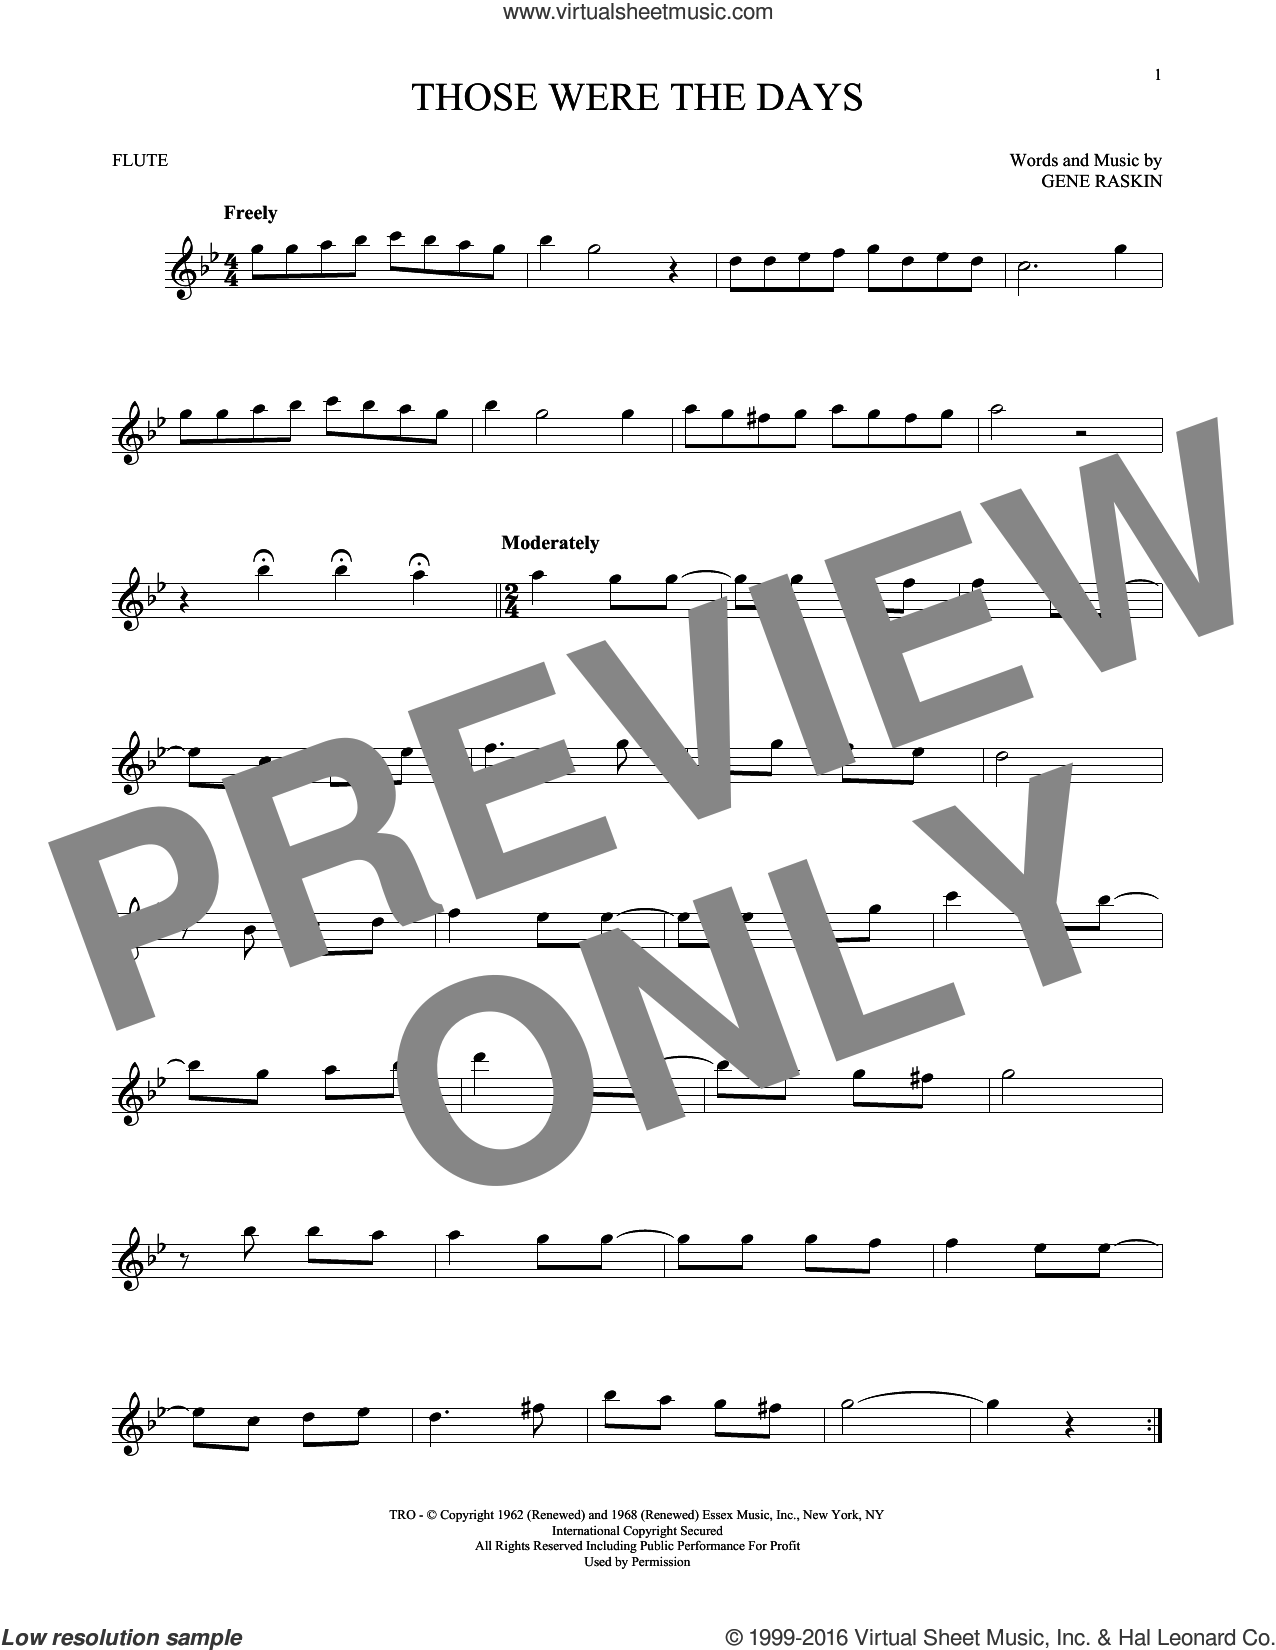 Those Were The Days sheet music for flute solo by Gene Raskin. Score Image Preview.